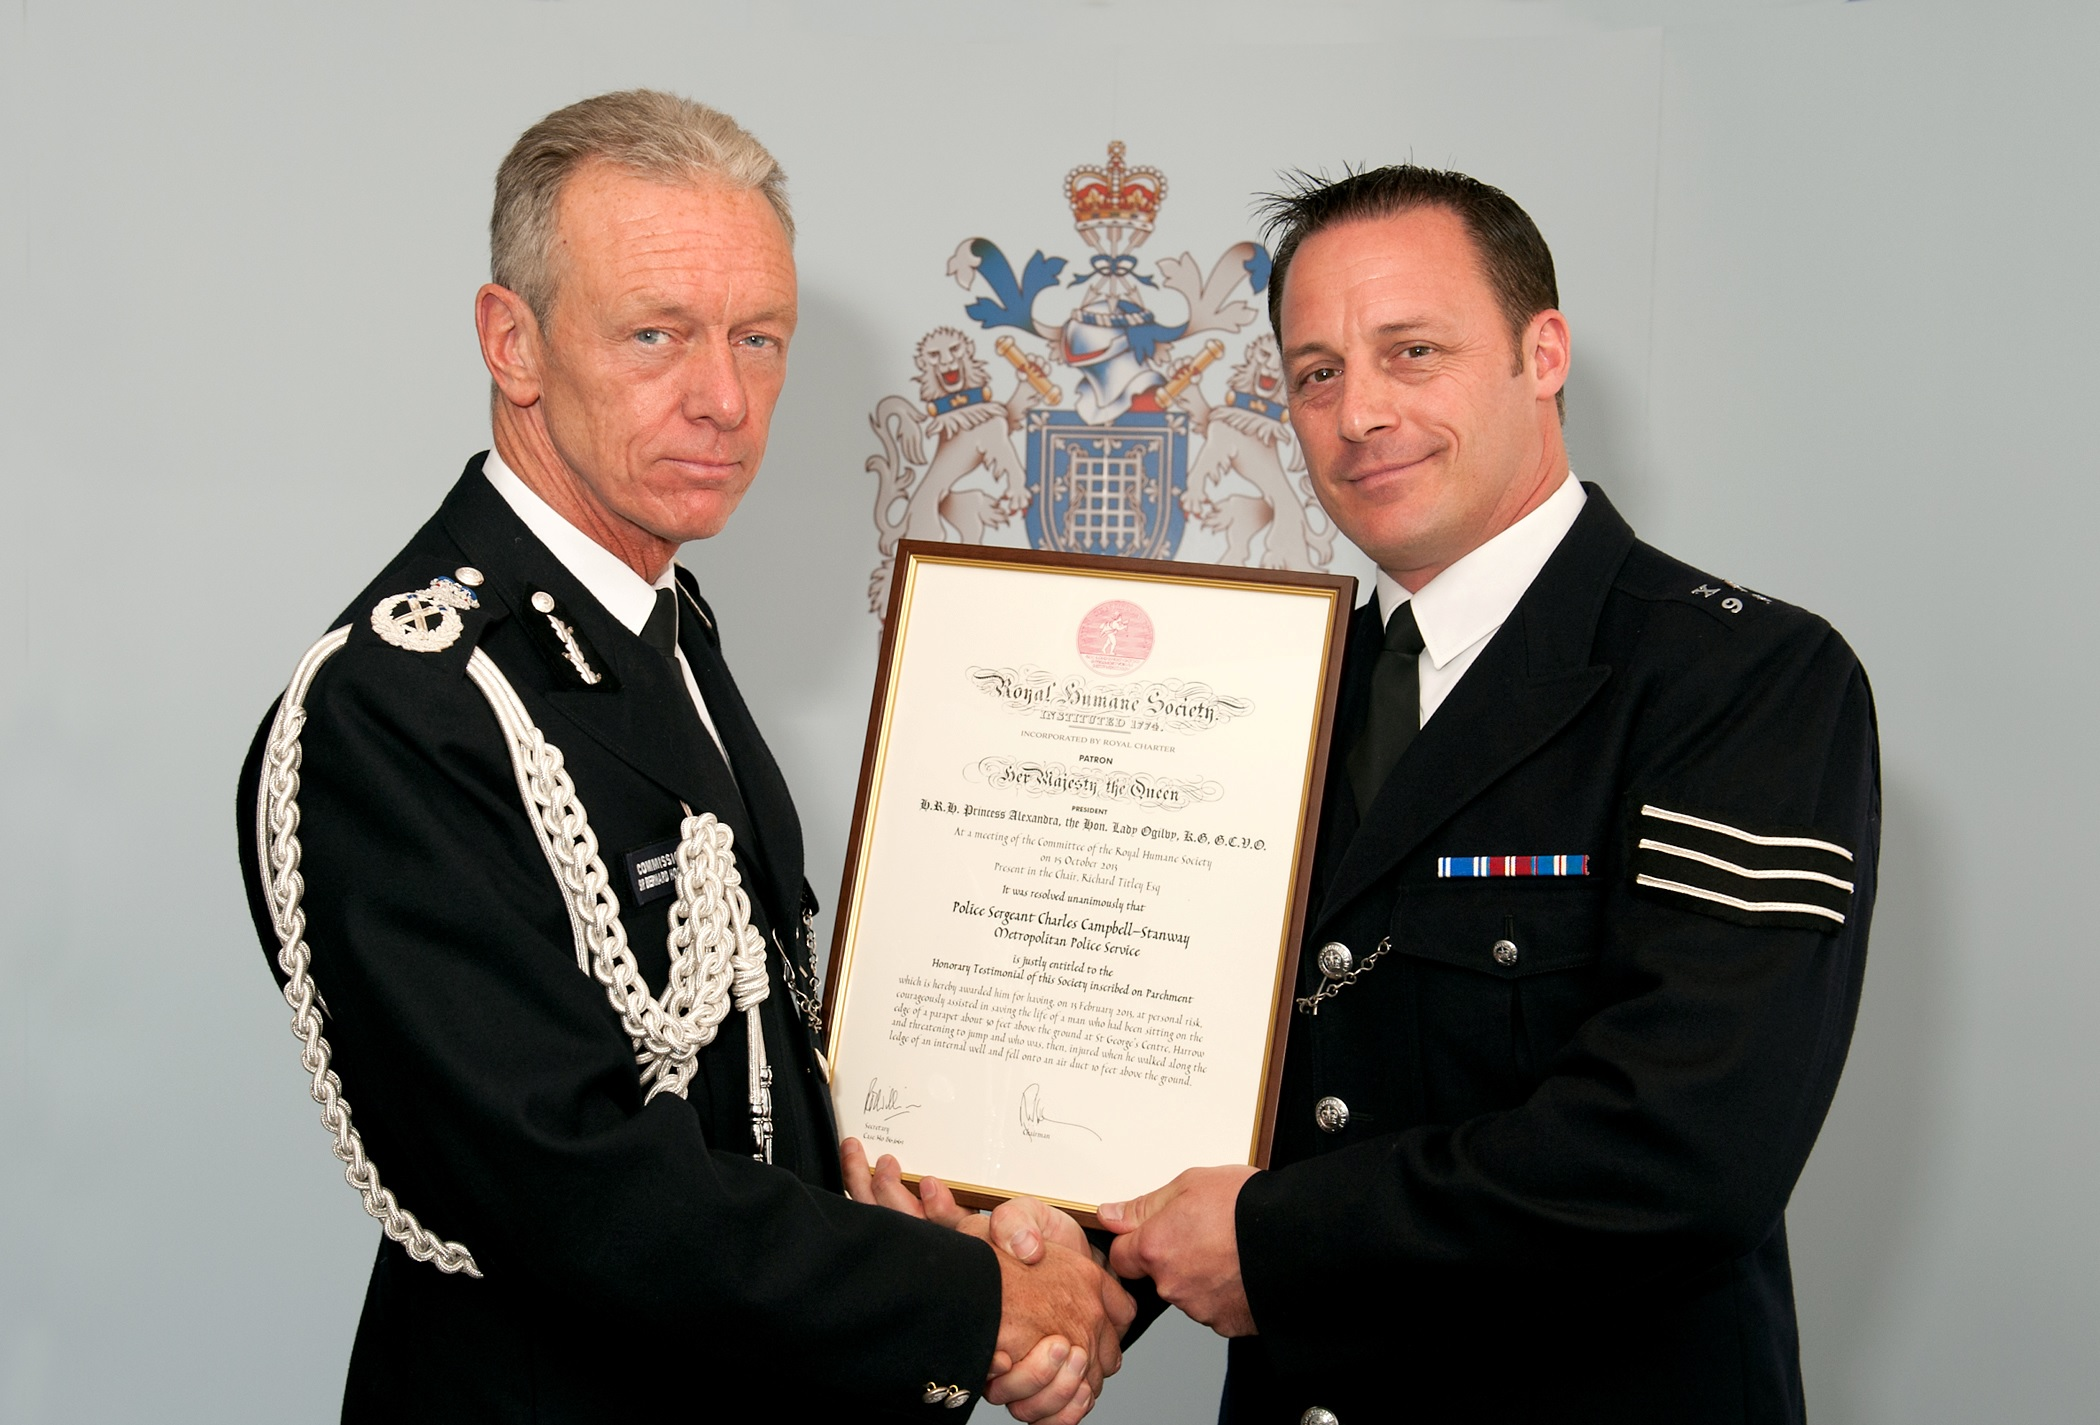 Met Commissioner Sir Bernard Hogan-Howe and Police Sergeant Chas Campbell-Stanway